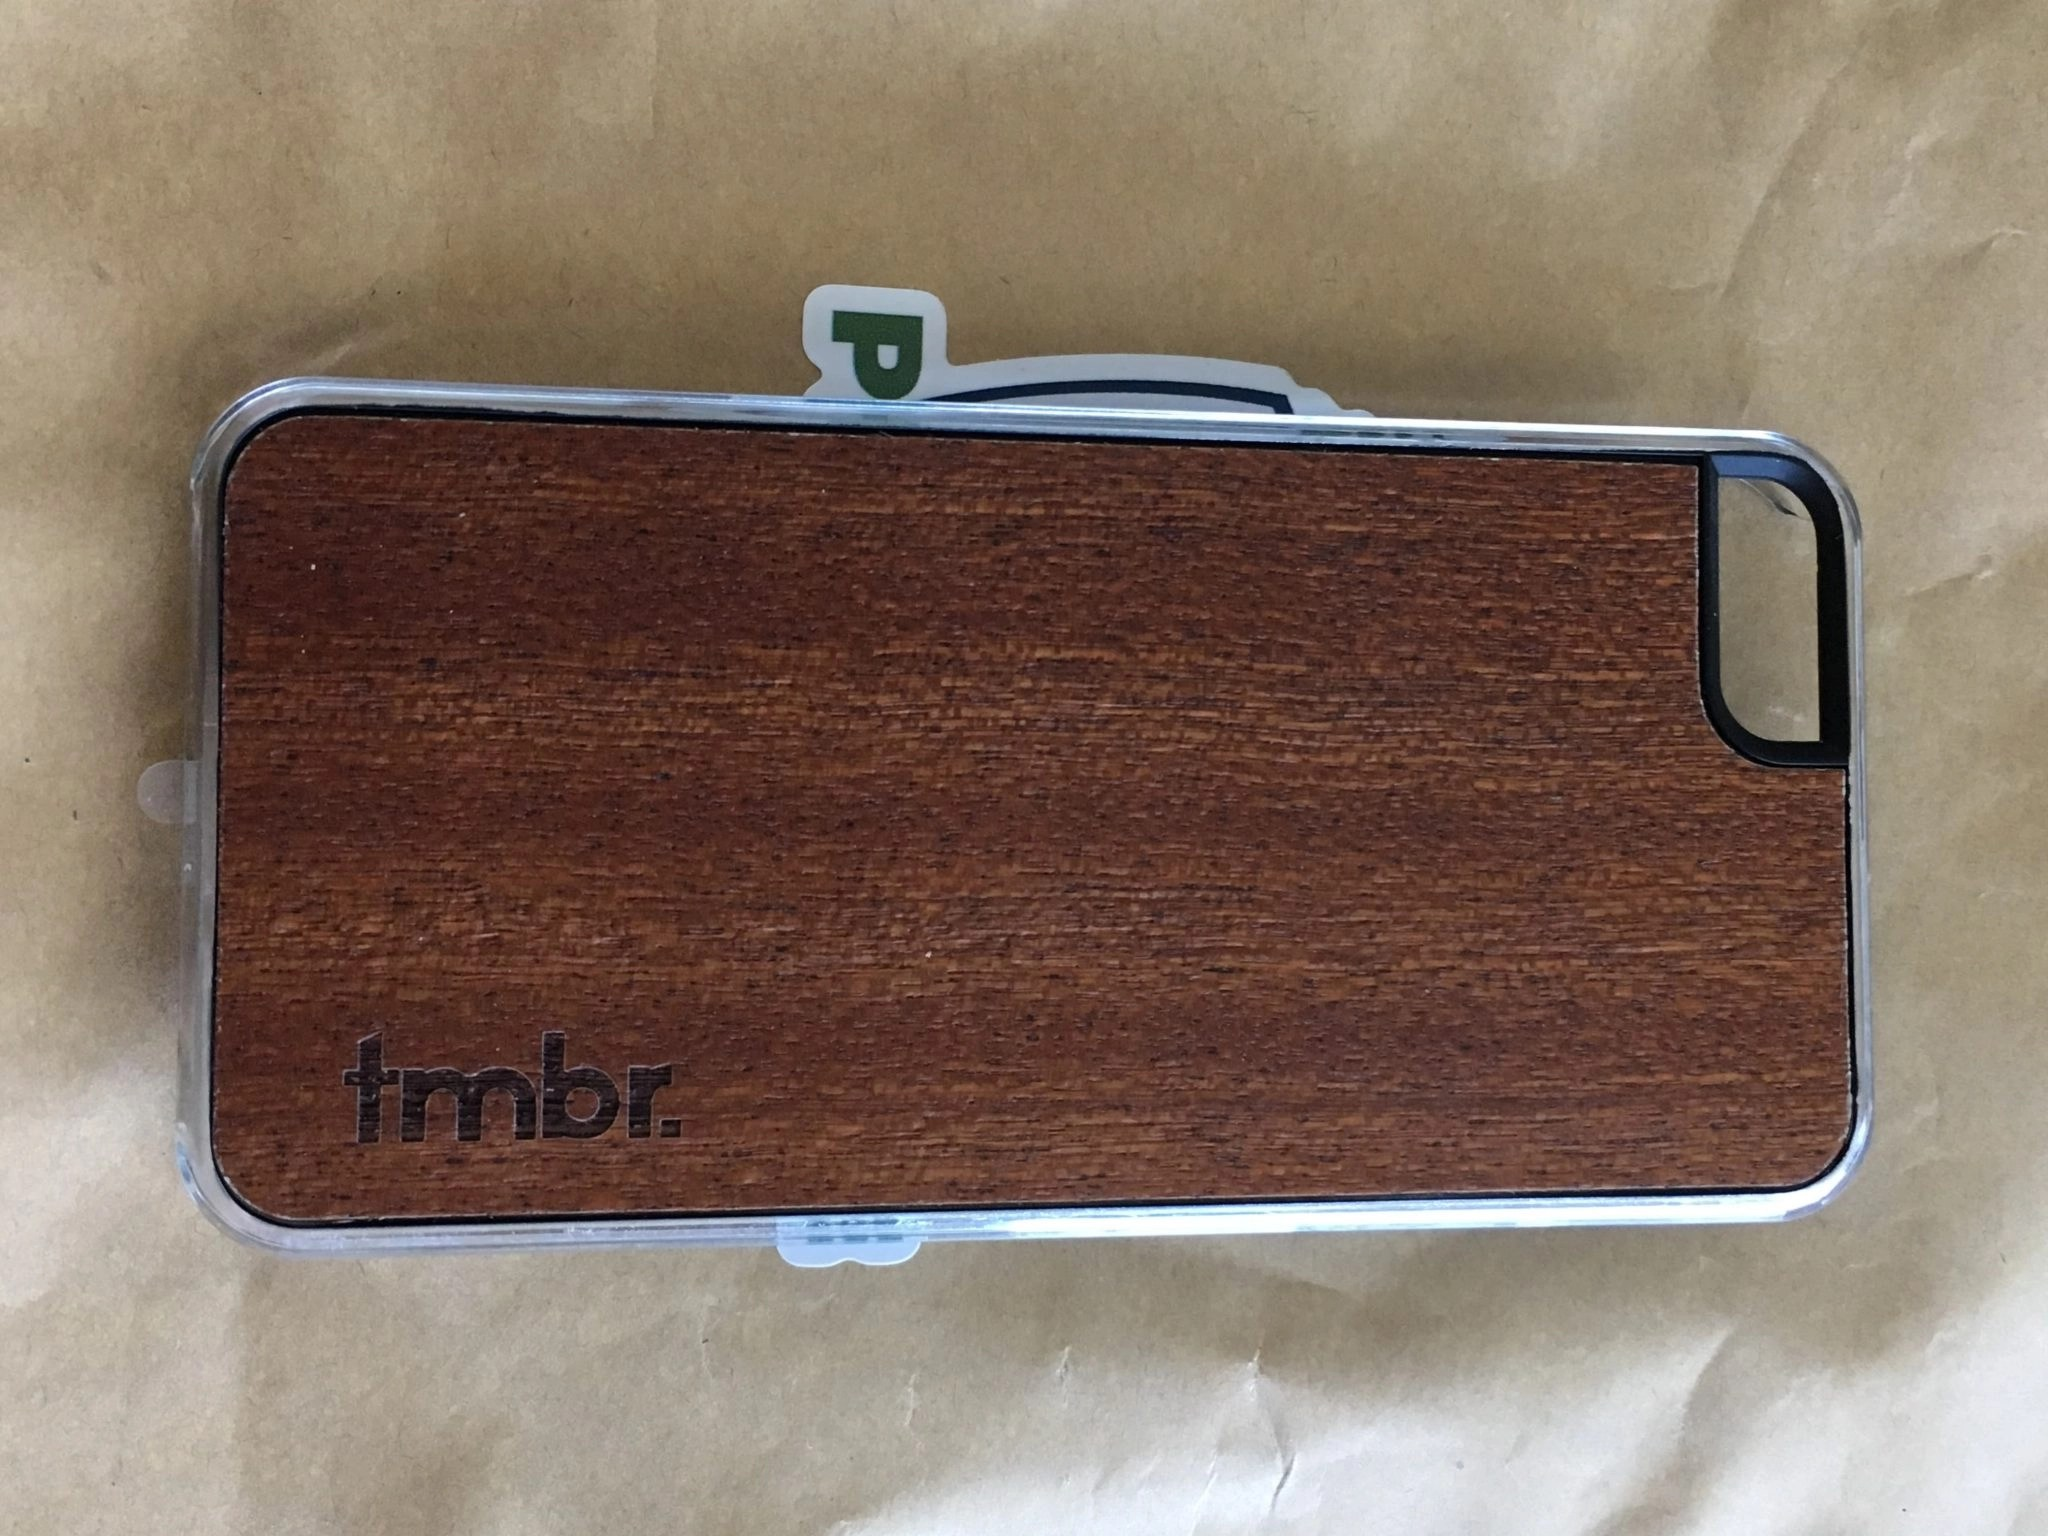 Tmbr. Wood Phone Case